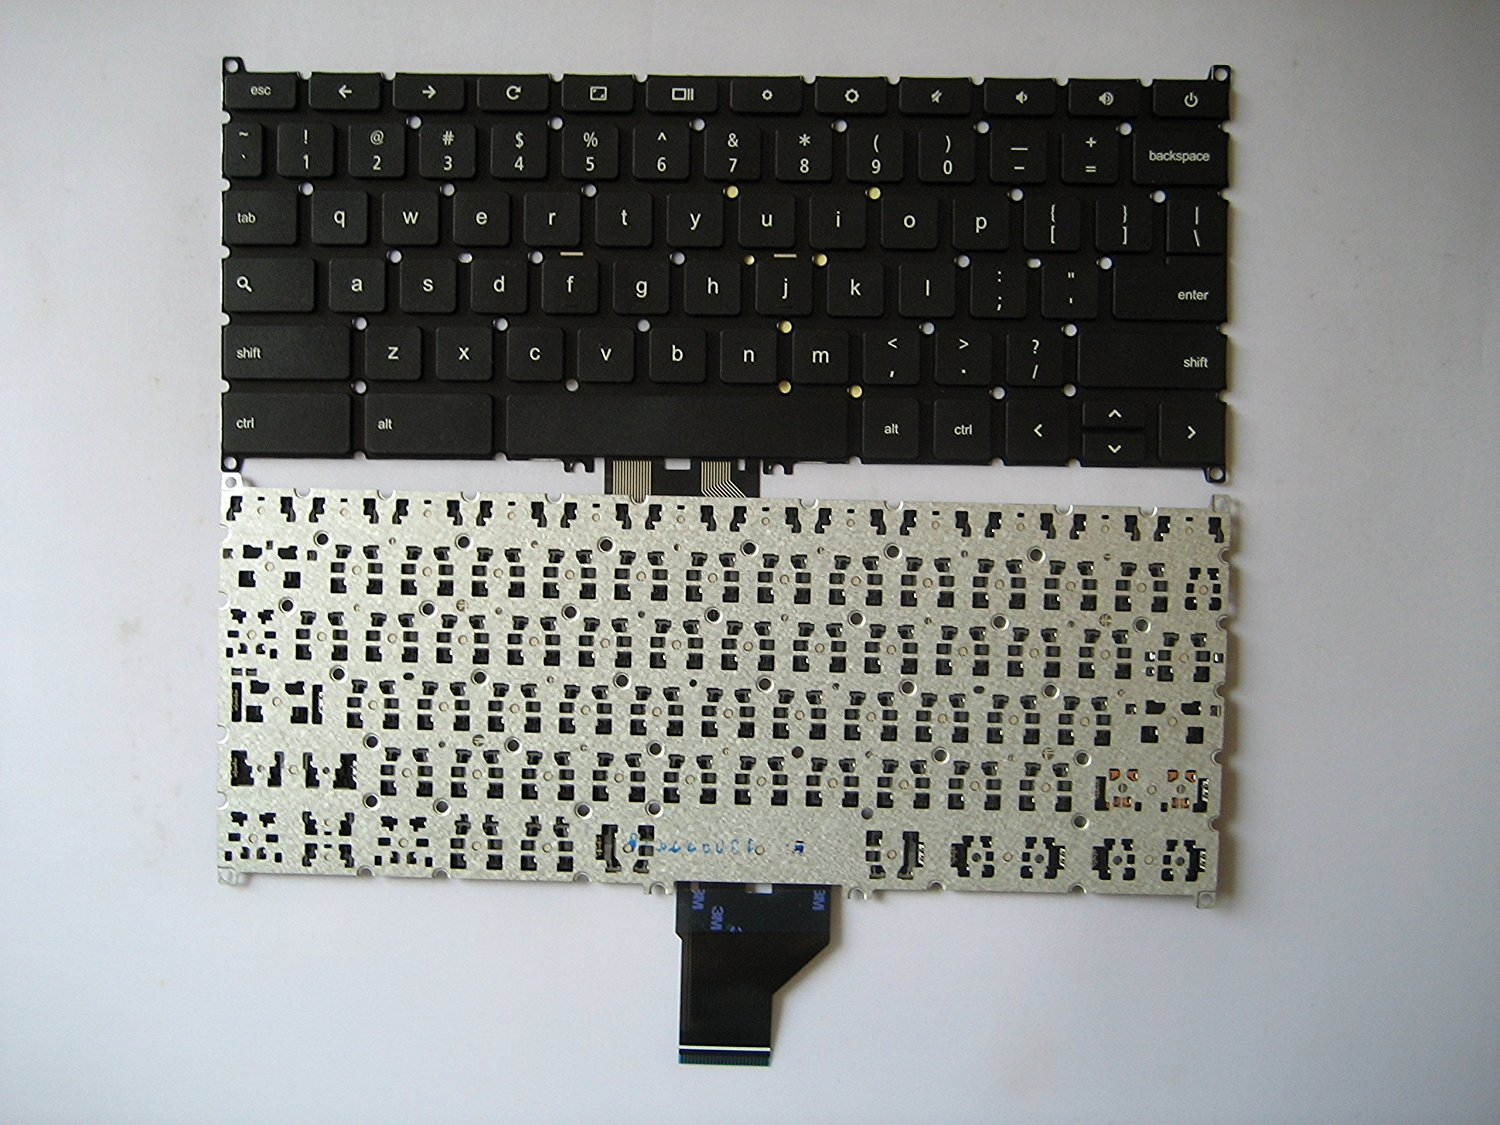 Lotfancy Laptop Replacement keyboard for Acer Chromebook C720 C720P C720-2848 Keyboard 9Z.NB0SQ.001 NSK-RA0SQ 01 AEZHNU00010 ZHN NK.I1117.026 without frame version US layout Black